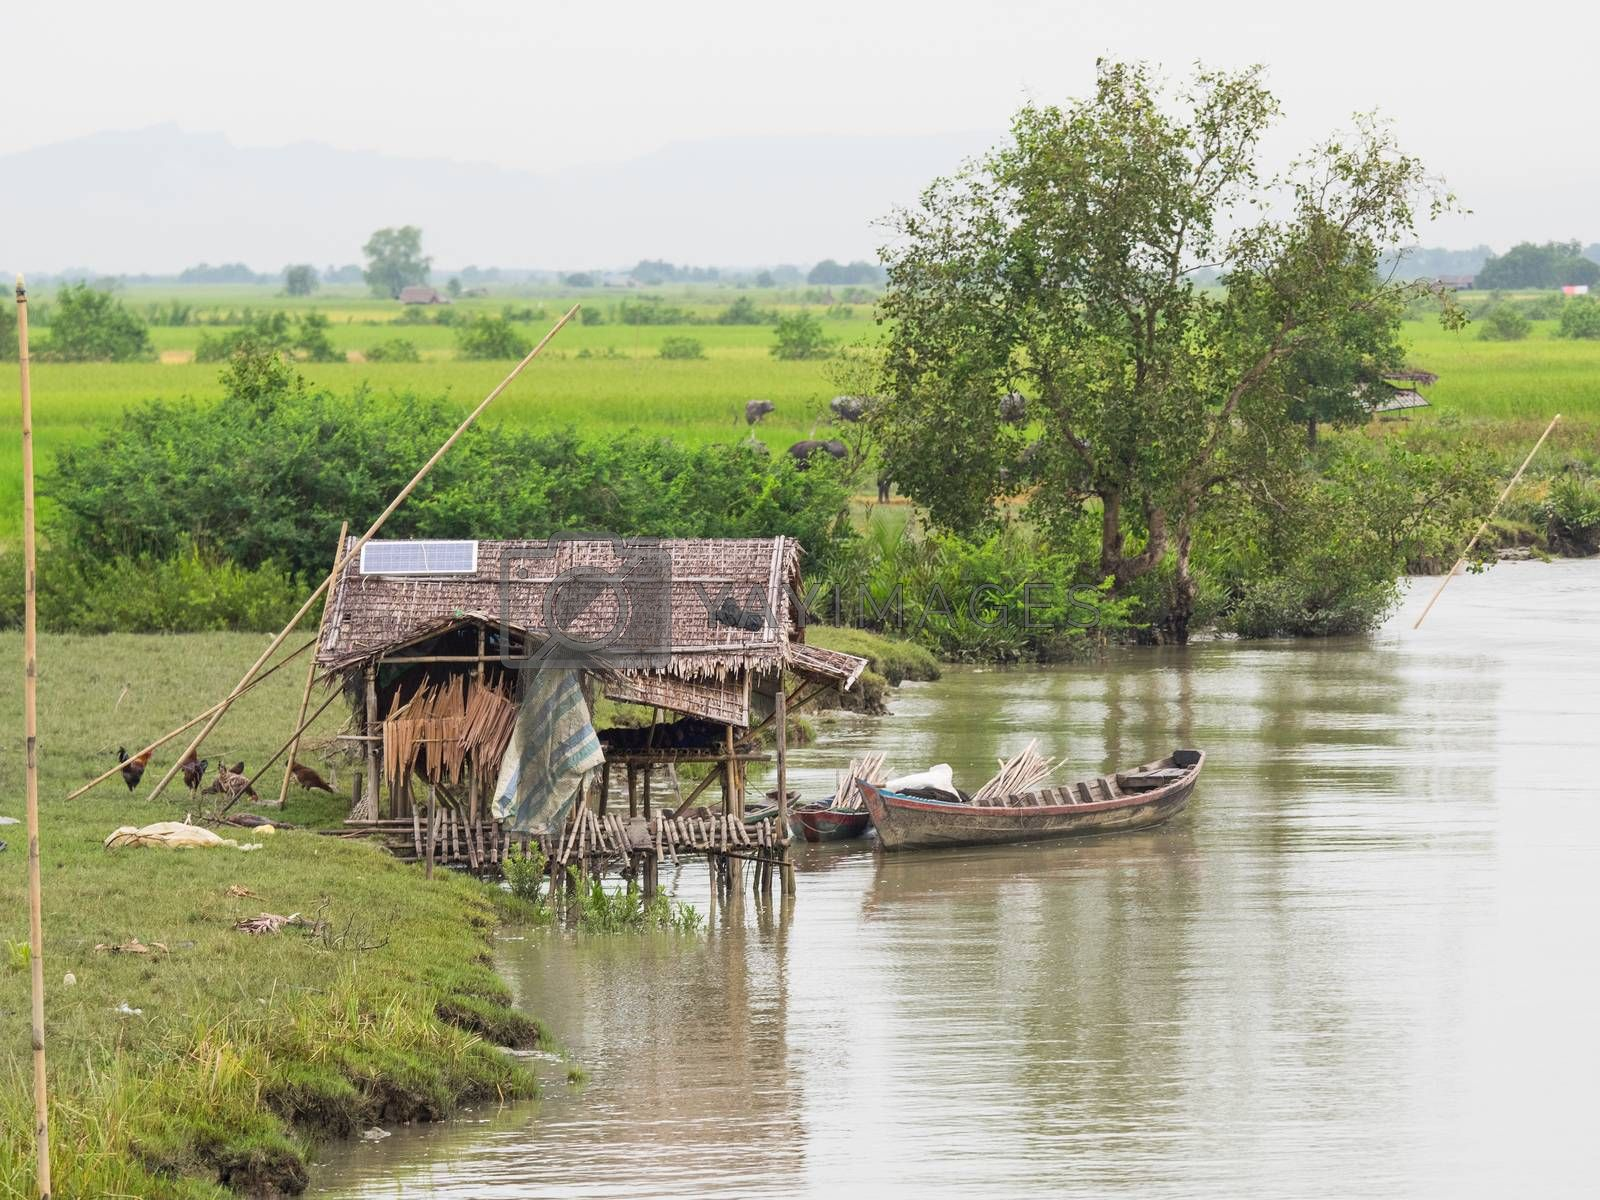 House on stilts at the riverside of the Kaladan River, near Mrauk U in the Rakhine State of Myanmar. Rice fields in the background. Solar panel on the roof of the house.